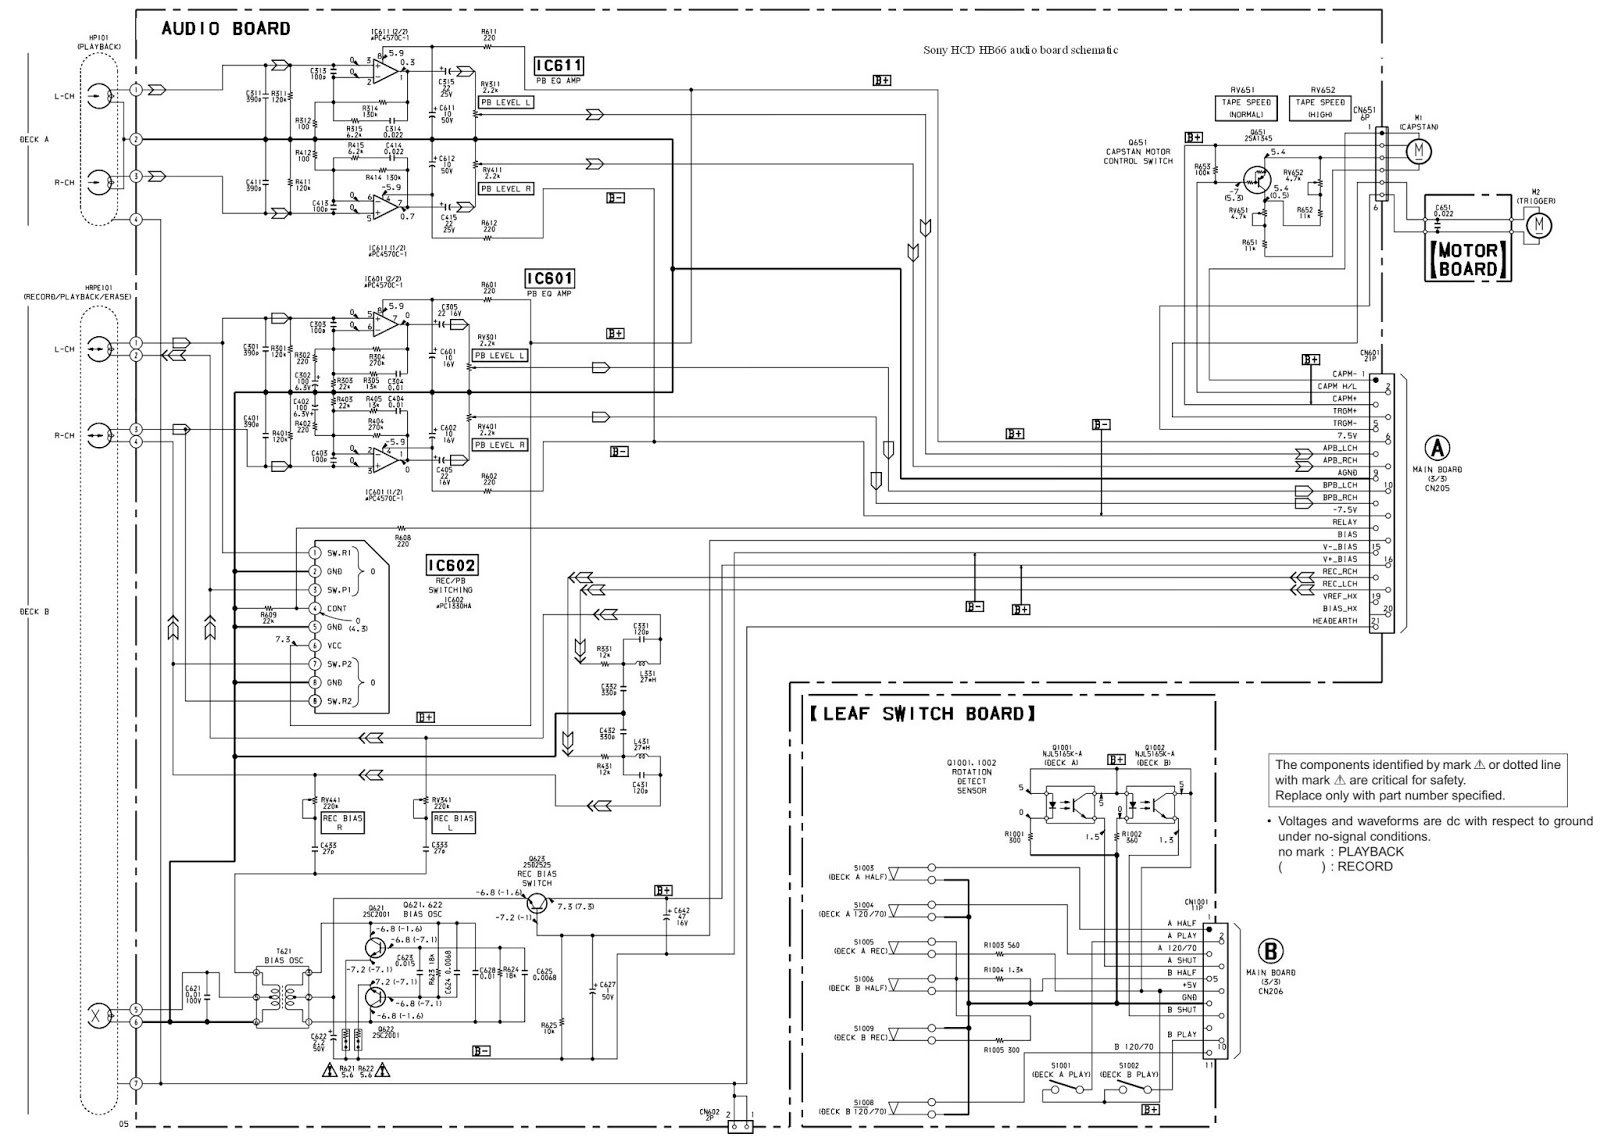 Lg Xb66 Manual Taurus Ultra Lite Schematics Array Sony Hcd Xb660 Compact Disc Deck Receiver U2013 Full Schematic Rh Elektrotricks Blogspot